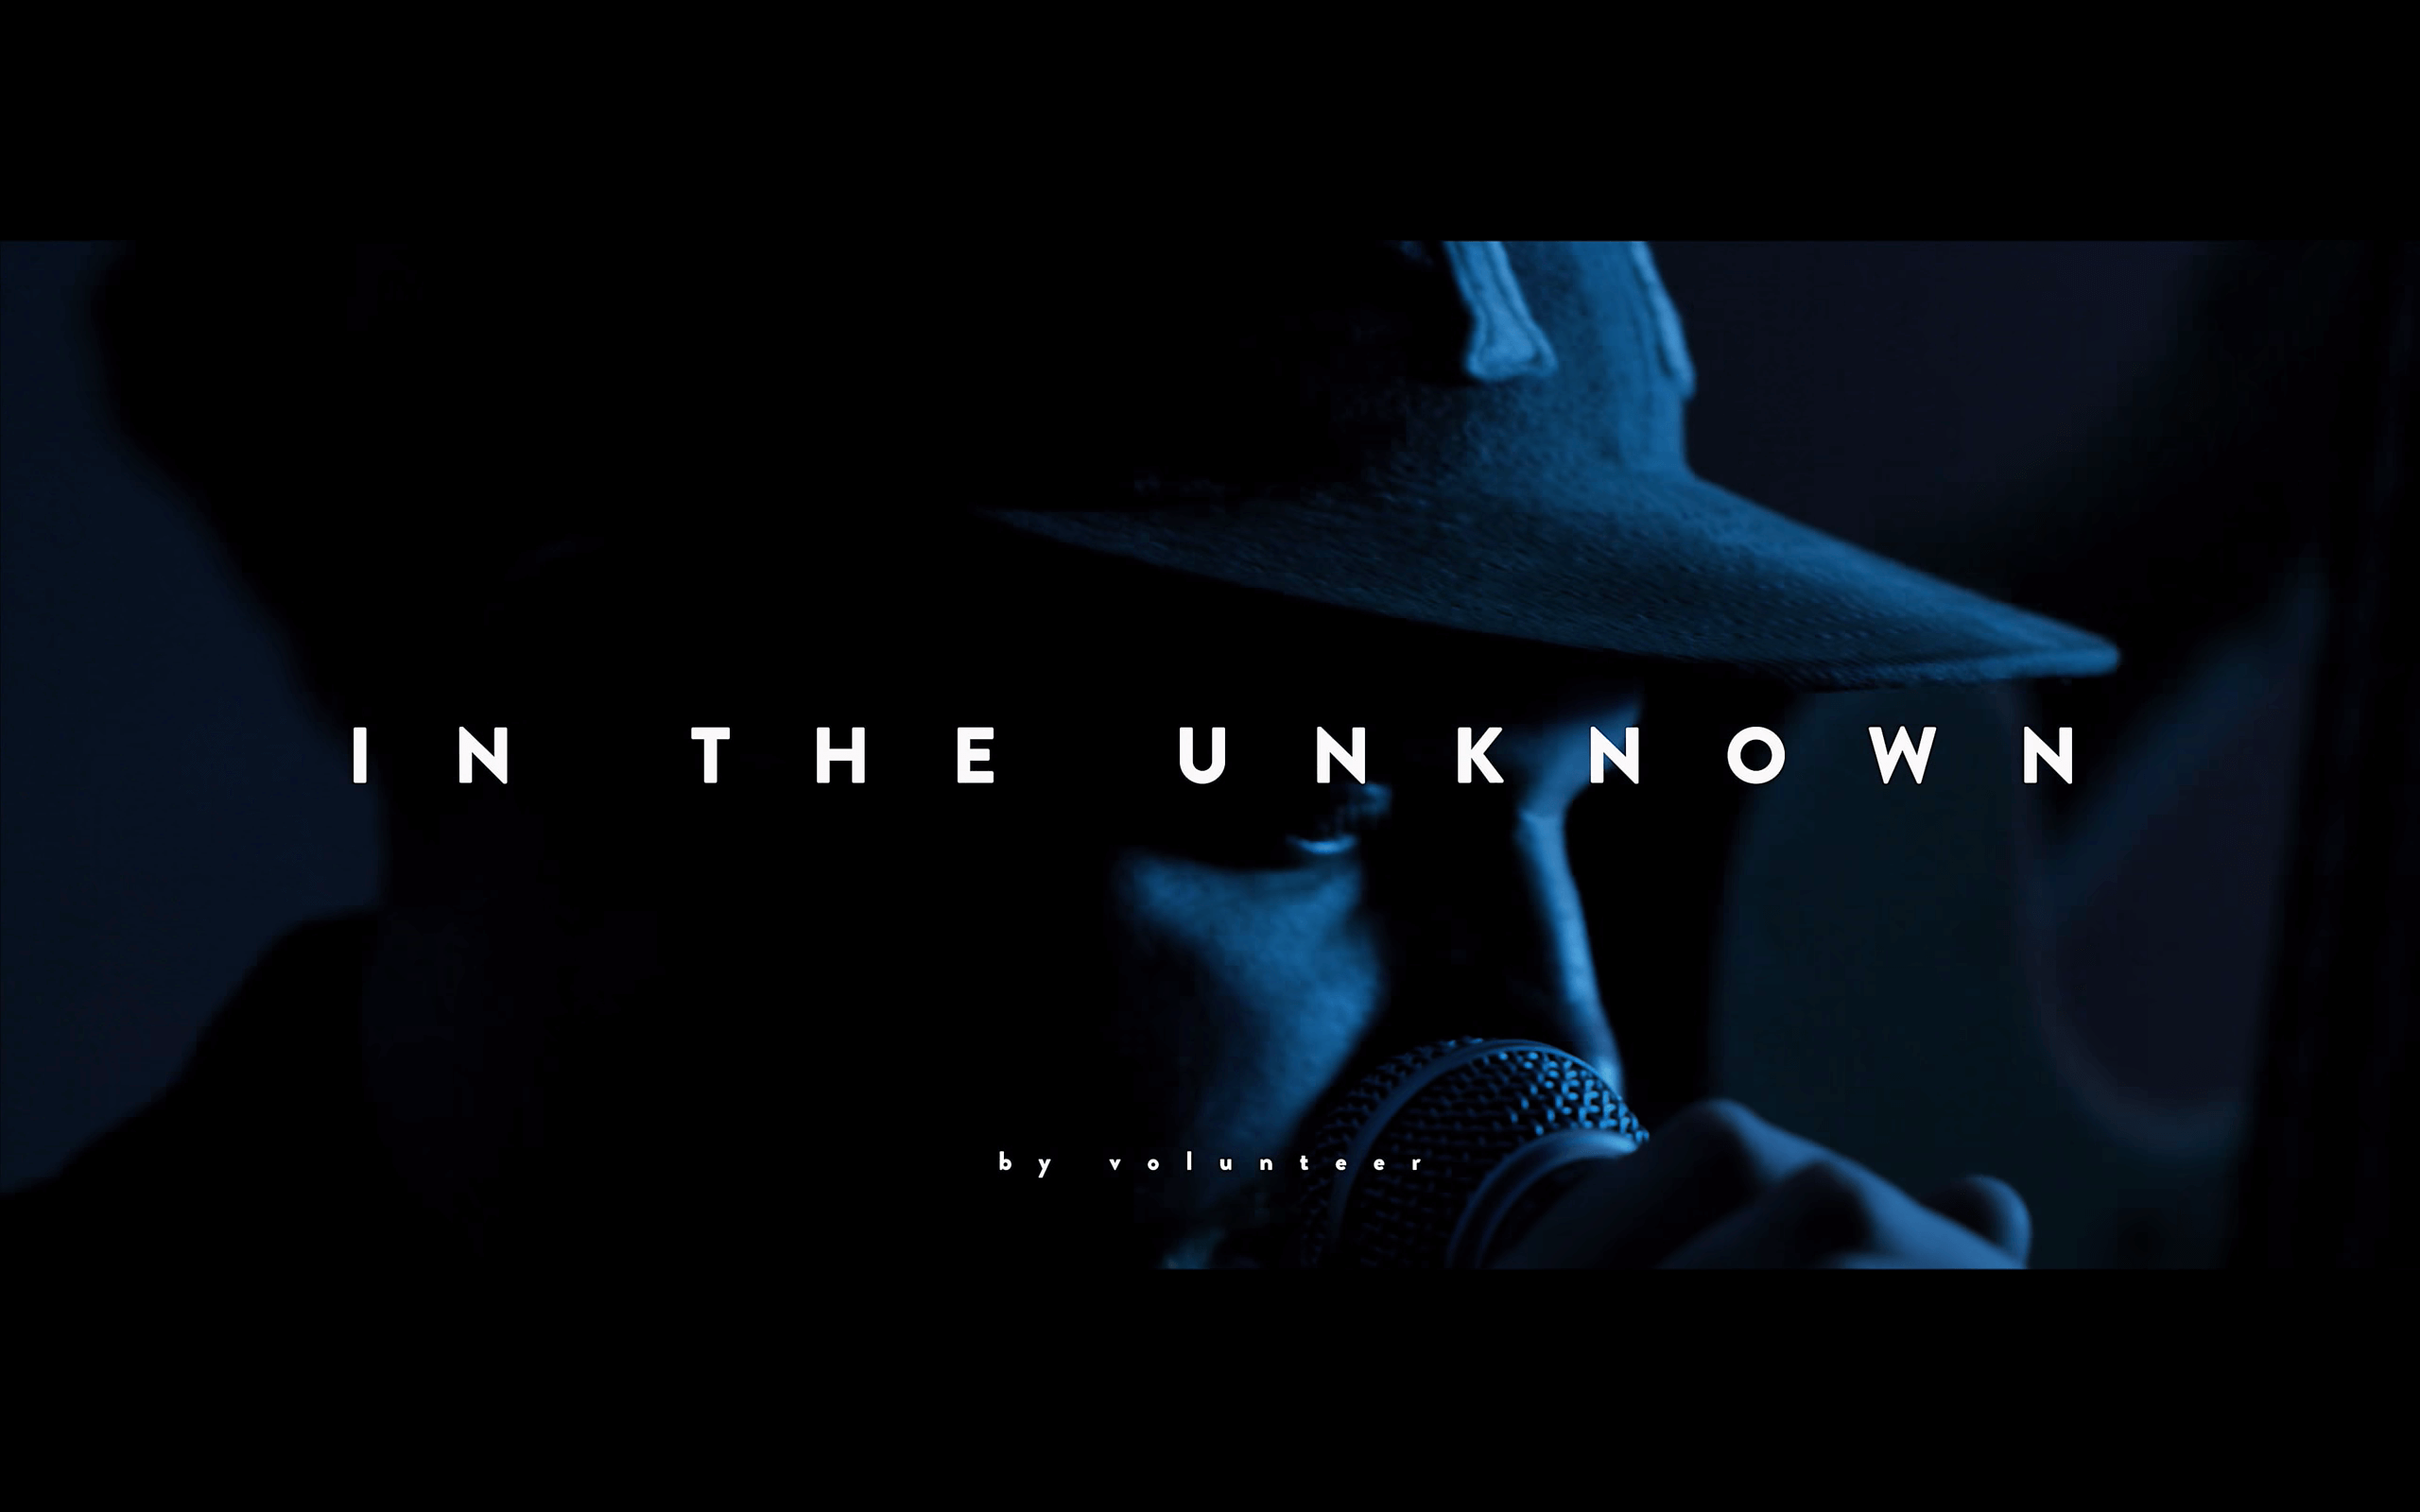 In the Unknown (Music Video)